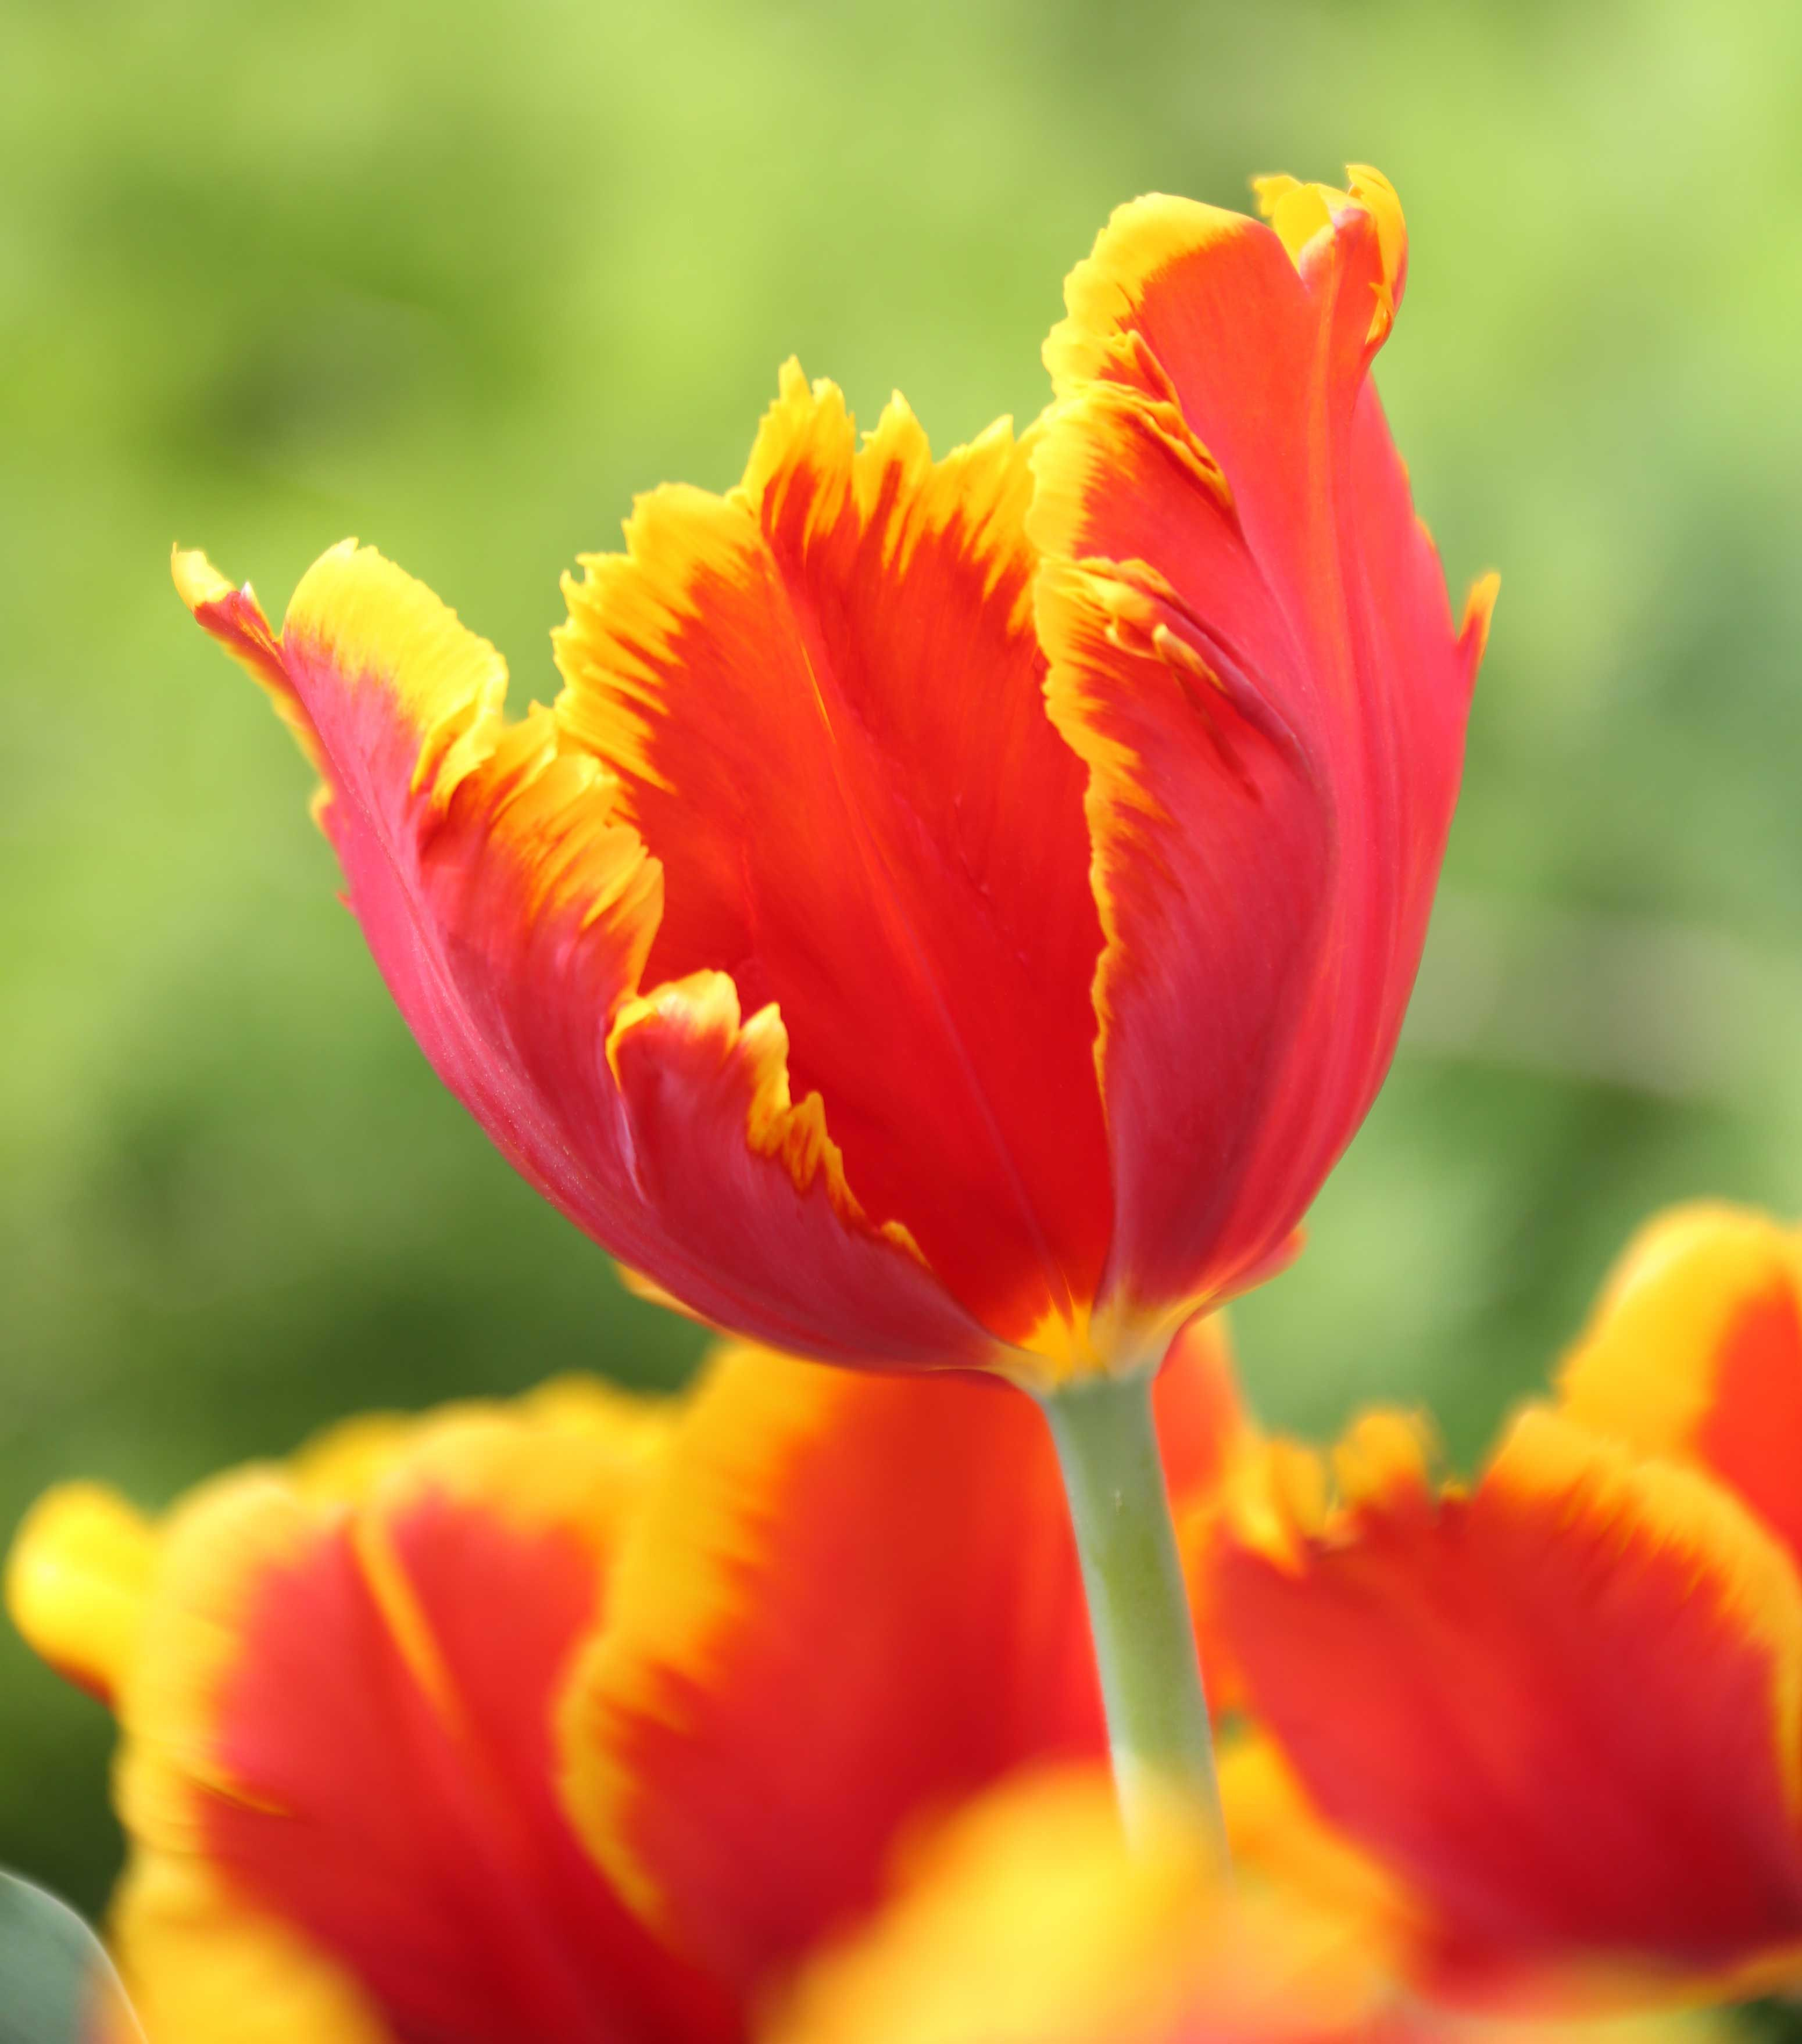 Parrot Tulips Bright Turn Heads With These Extra Large Their Petals Are A Swirl Of Canary Yellow And Tomato Red